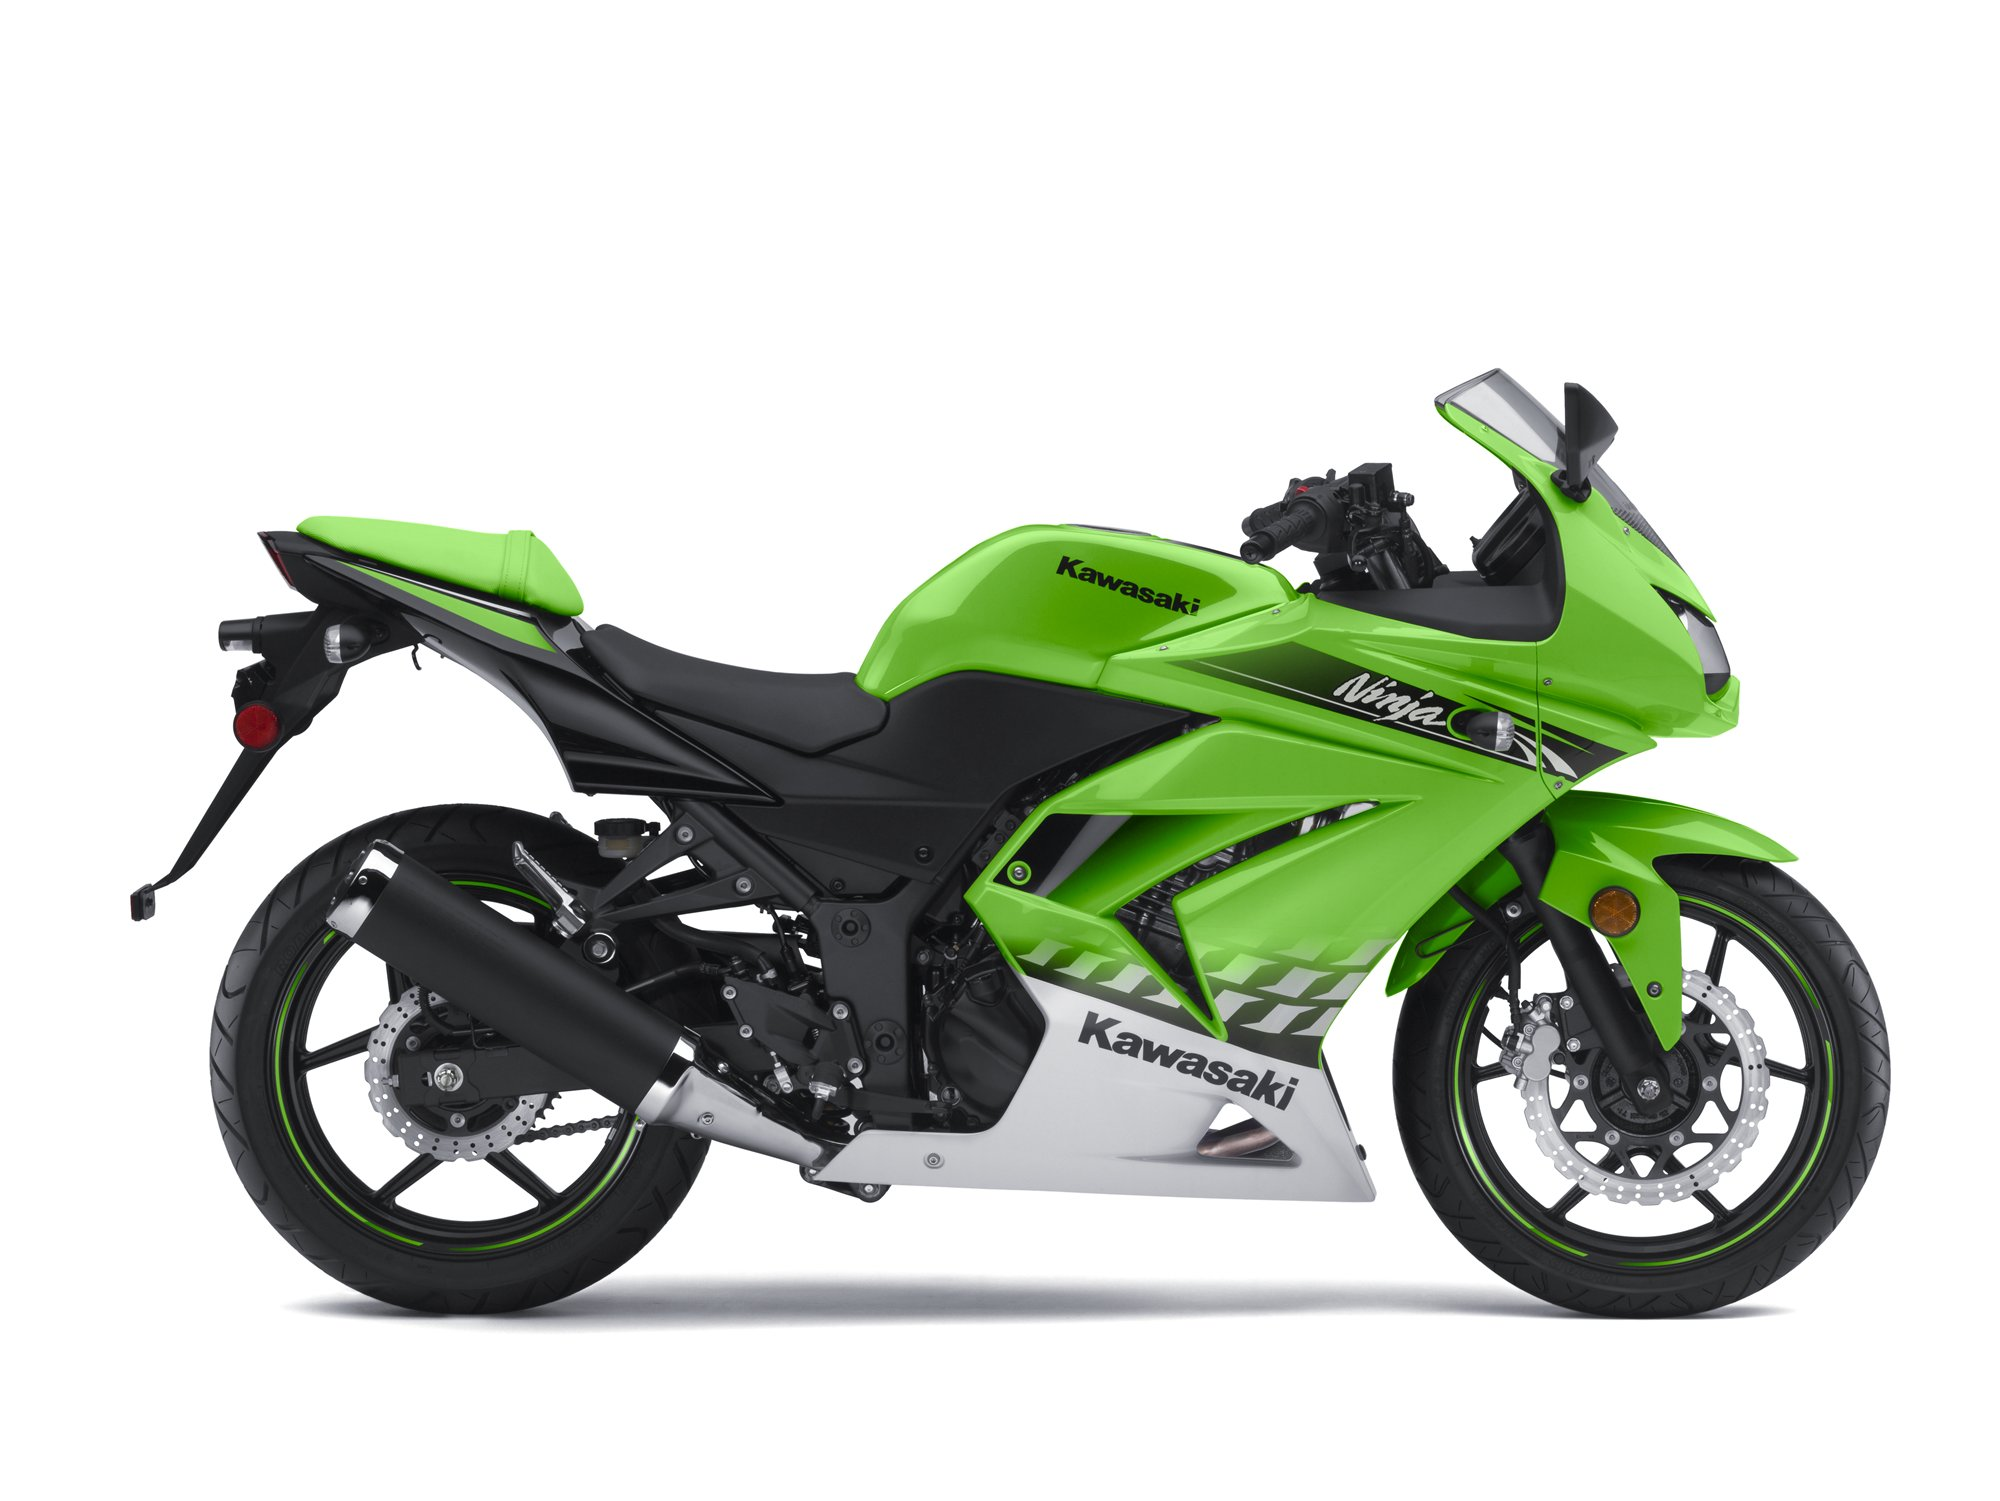 2010 Kawasaki Ninja 250R | Top Speed